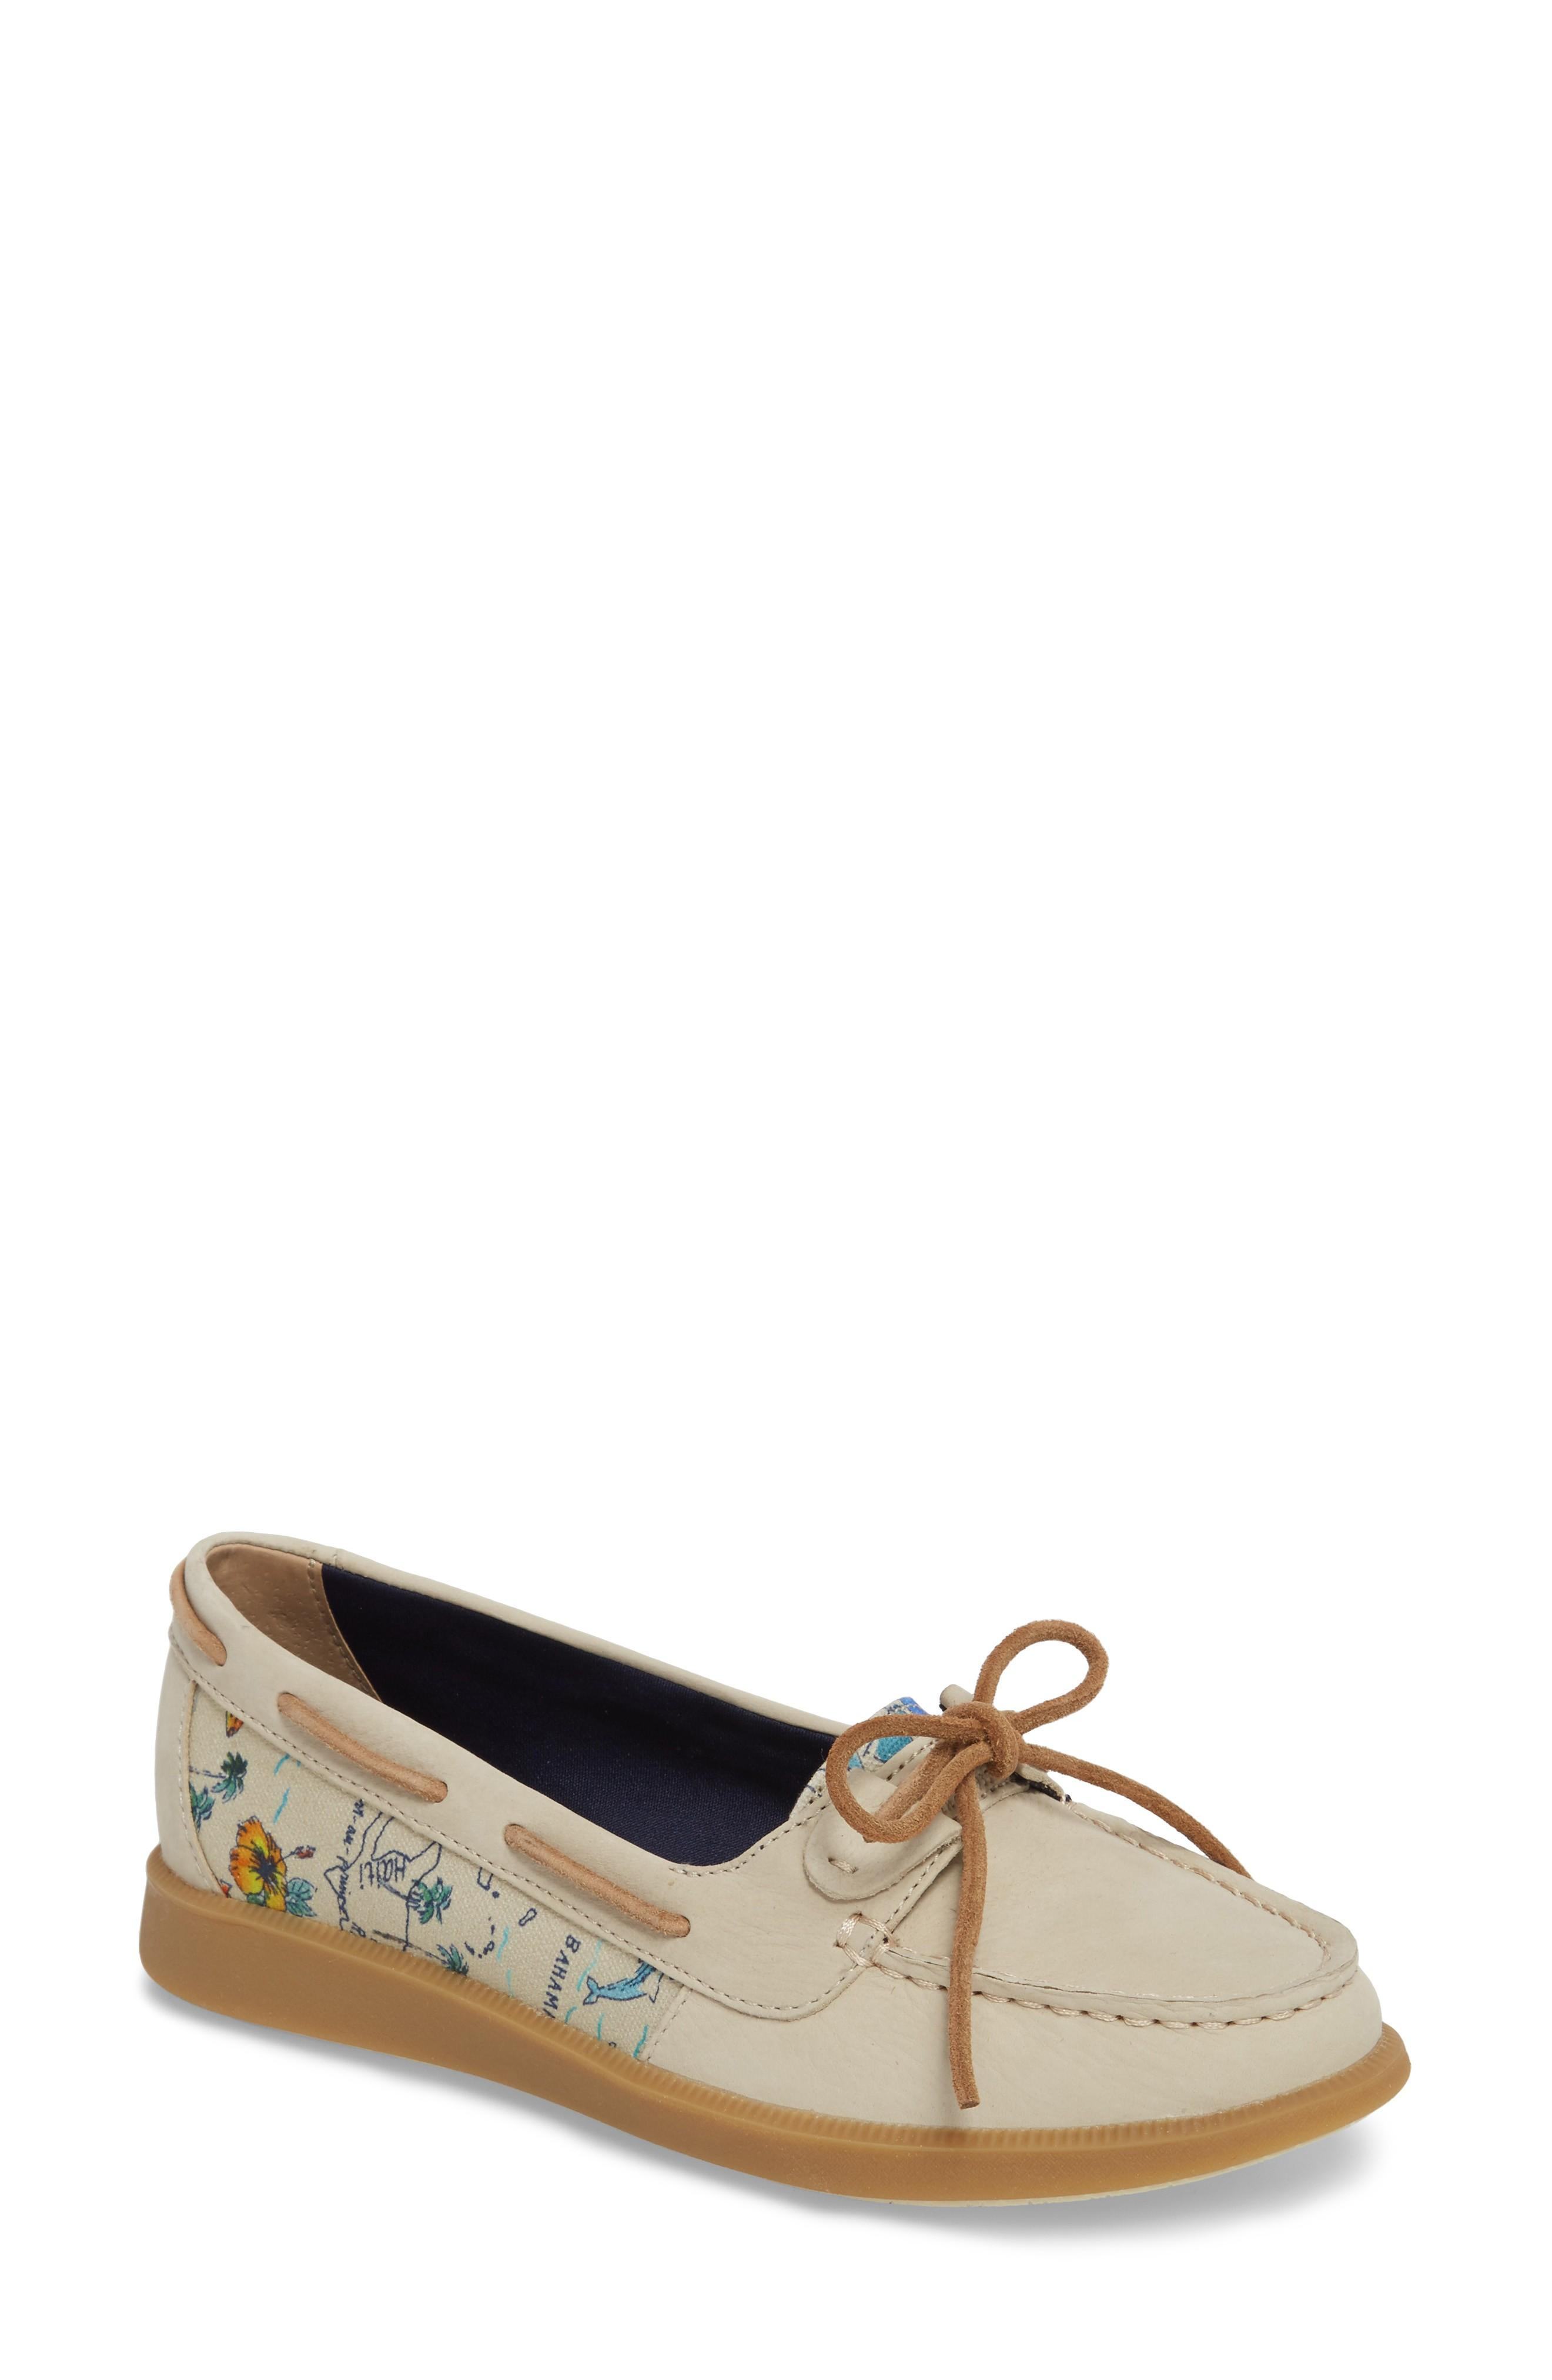 Sperry Oasis Boat Shoe In Linen Map Print Canvas